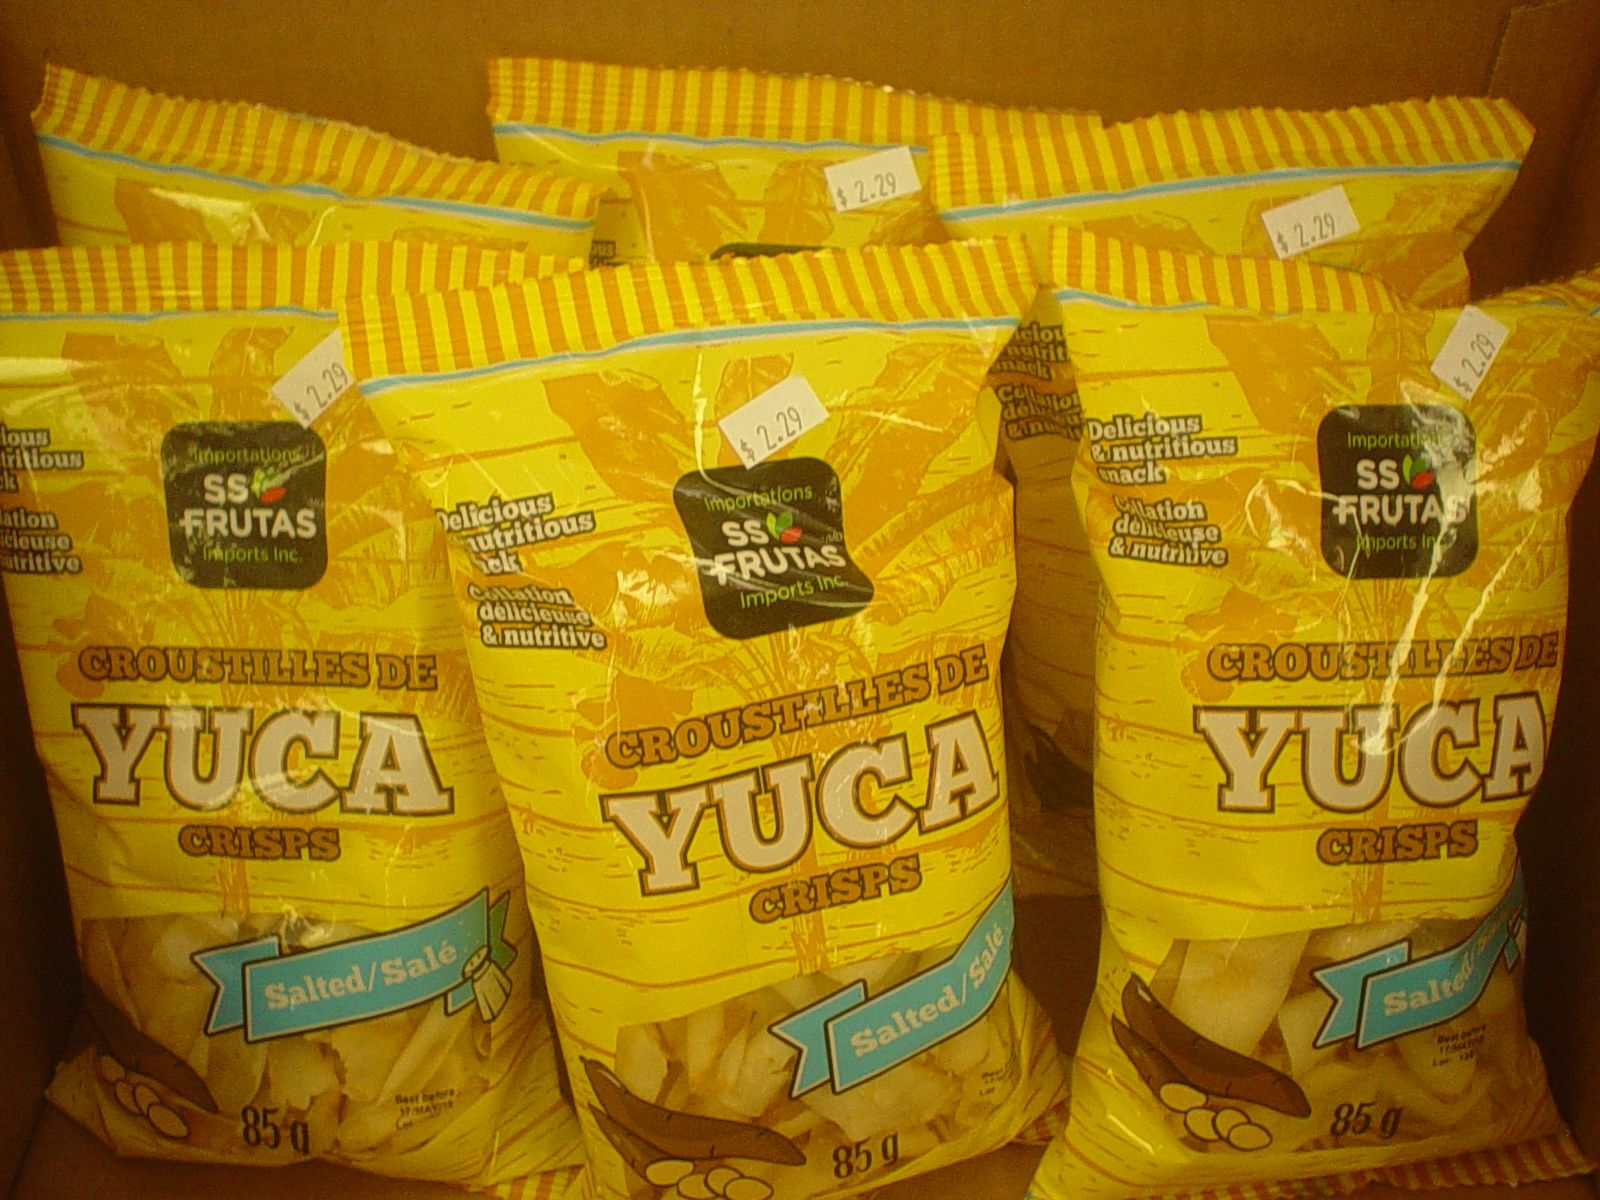 Yucca (cassava) chips! A healthier snack for you... new at